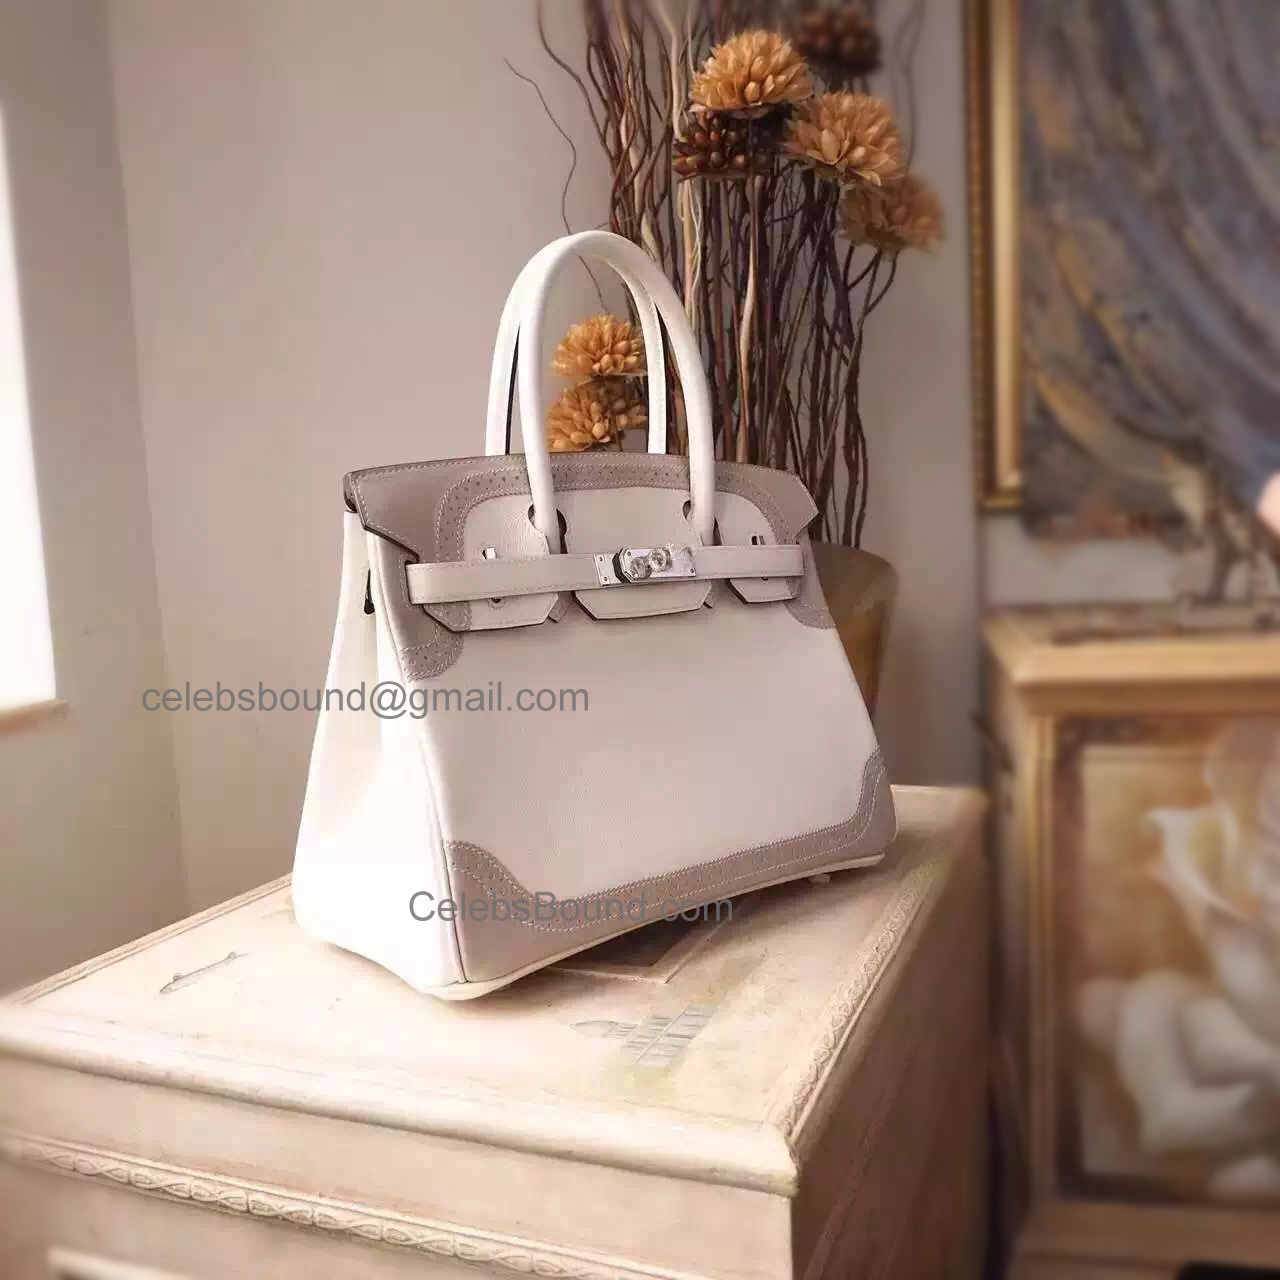 Hand Stitched Hermes Birkin 30 Ghillies Bag in Bicolored cc01 Blanc Calfskin SHW